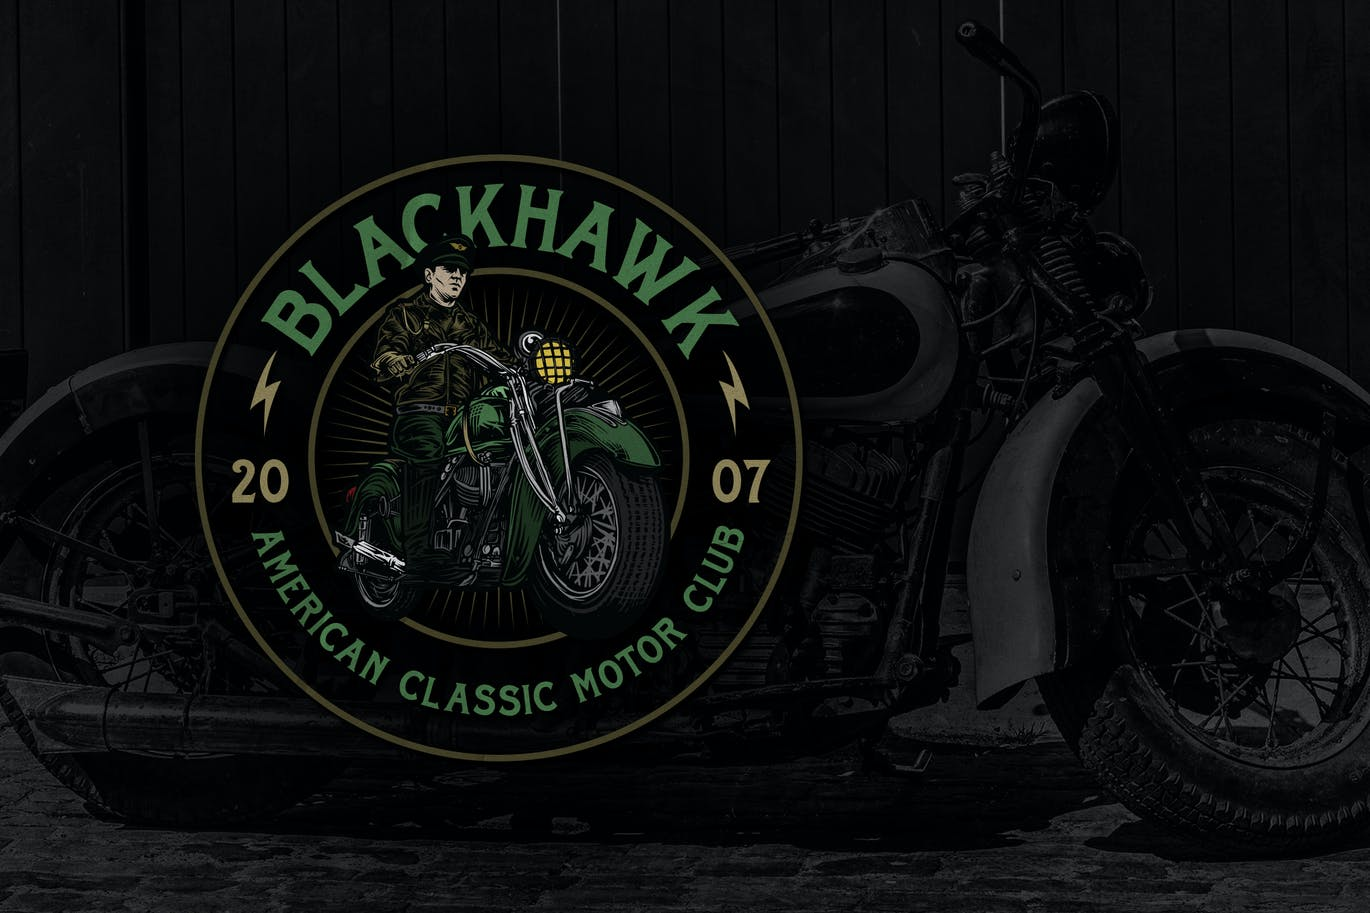 Classic Motorcycle Volume 2 No.3